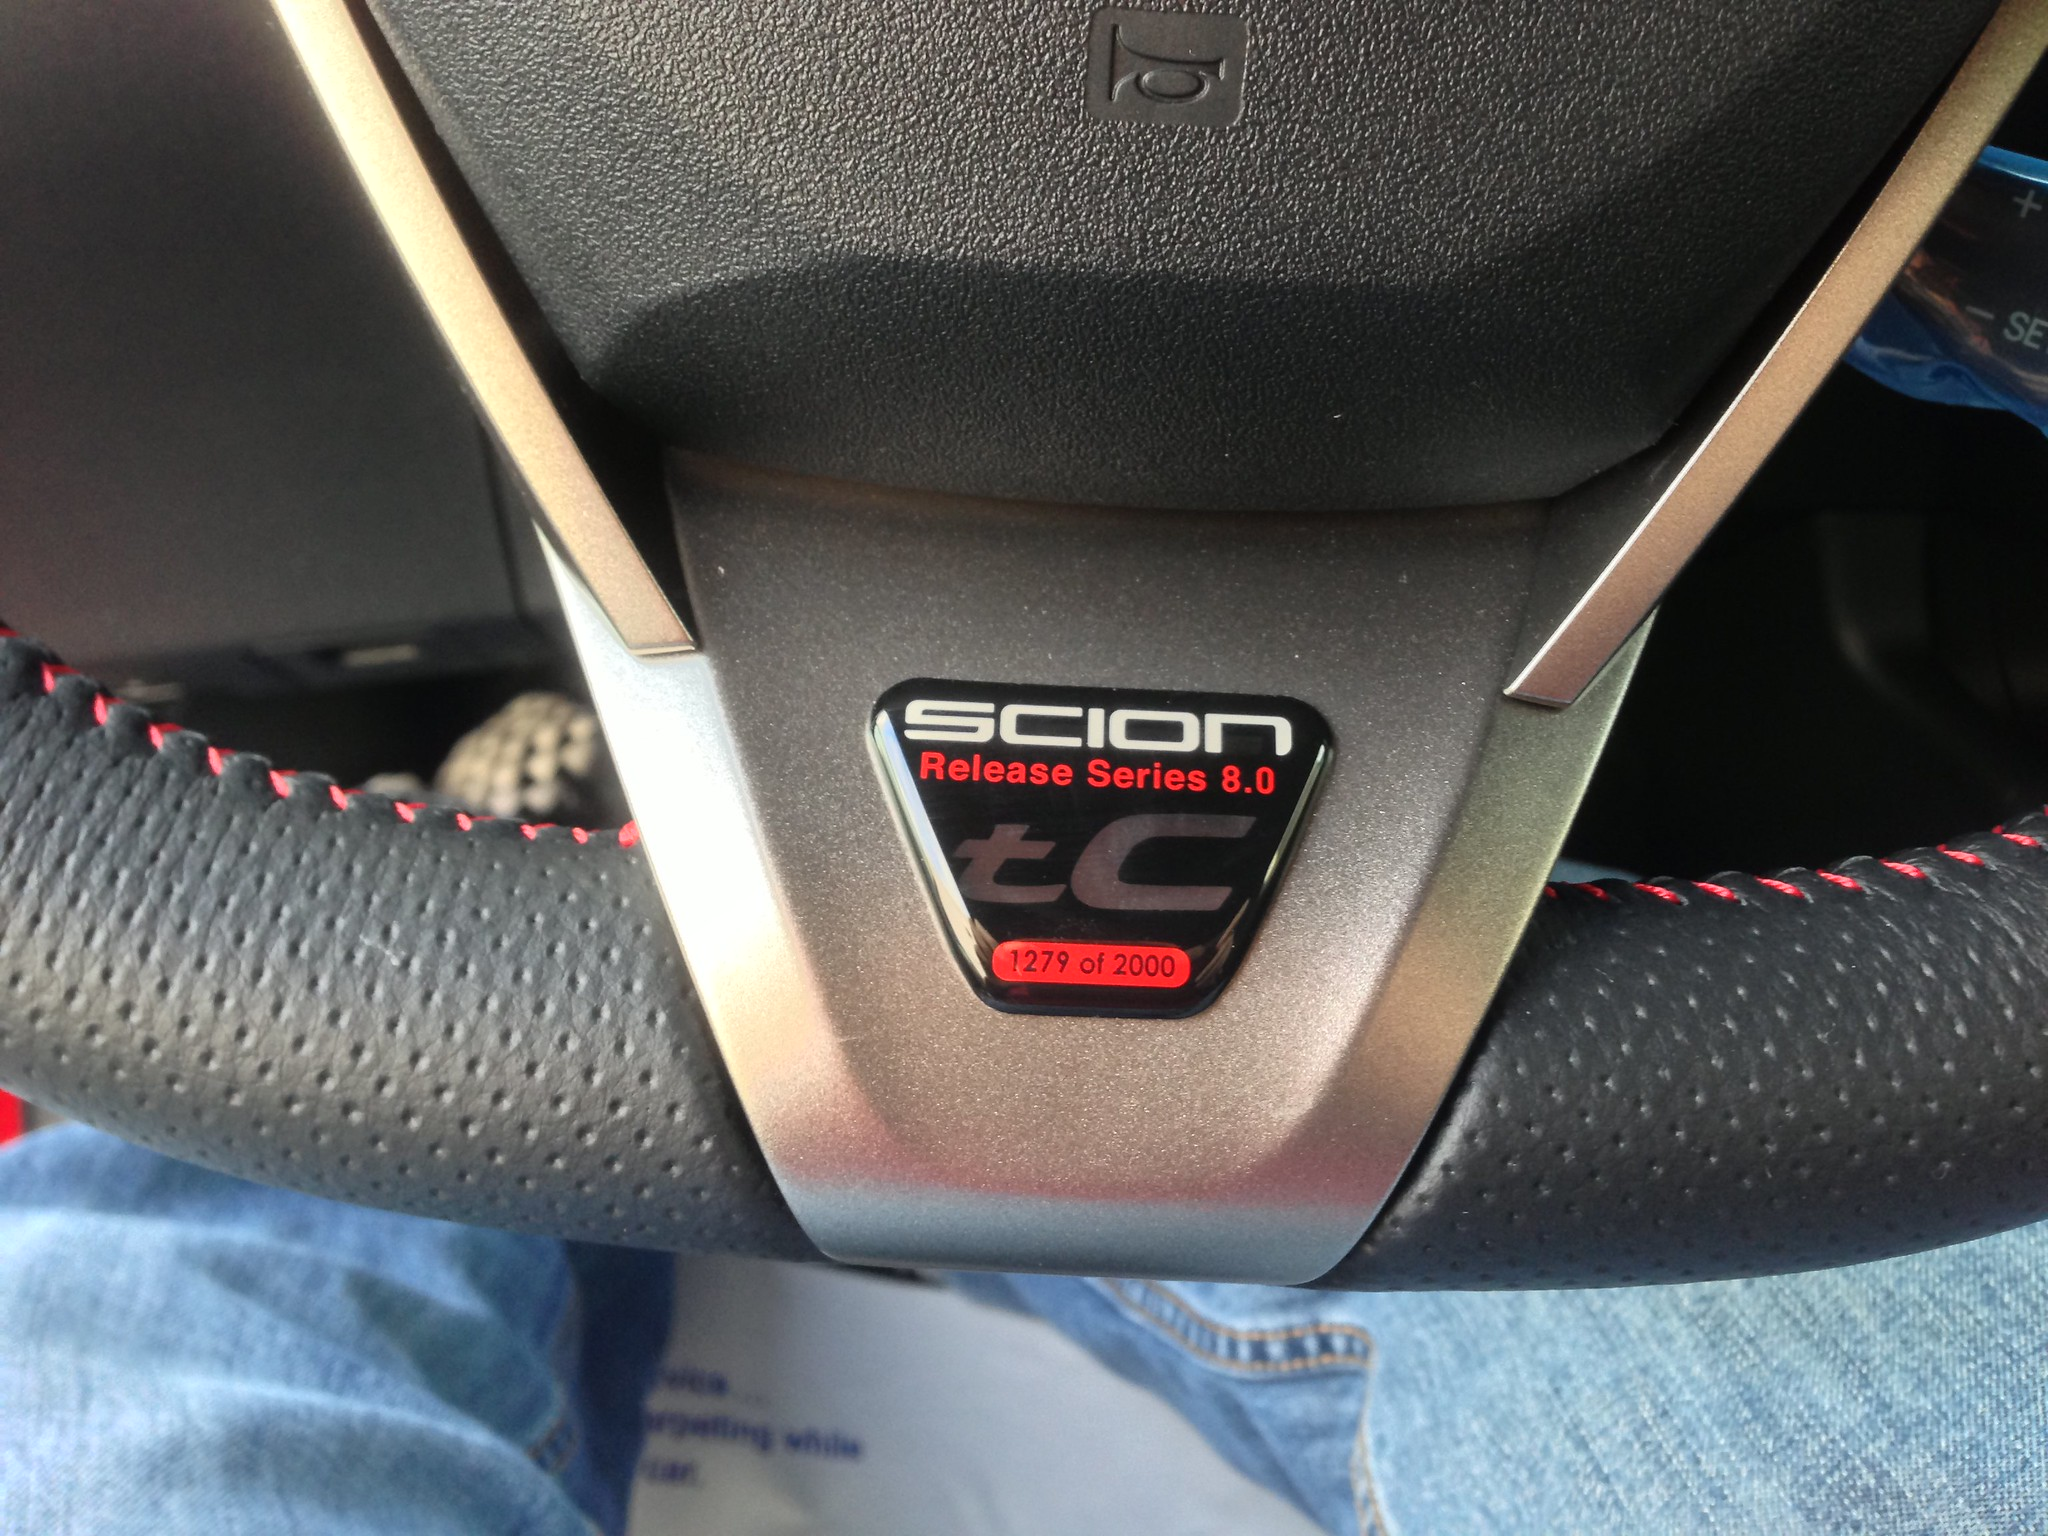 My New 2013 Scion Tc Rs 8 0 Badge This Replaces My